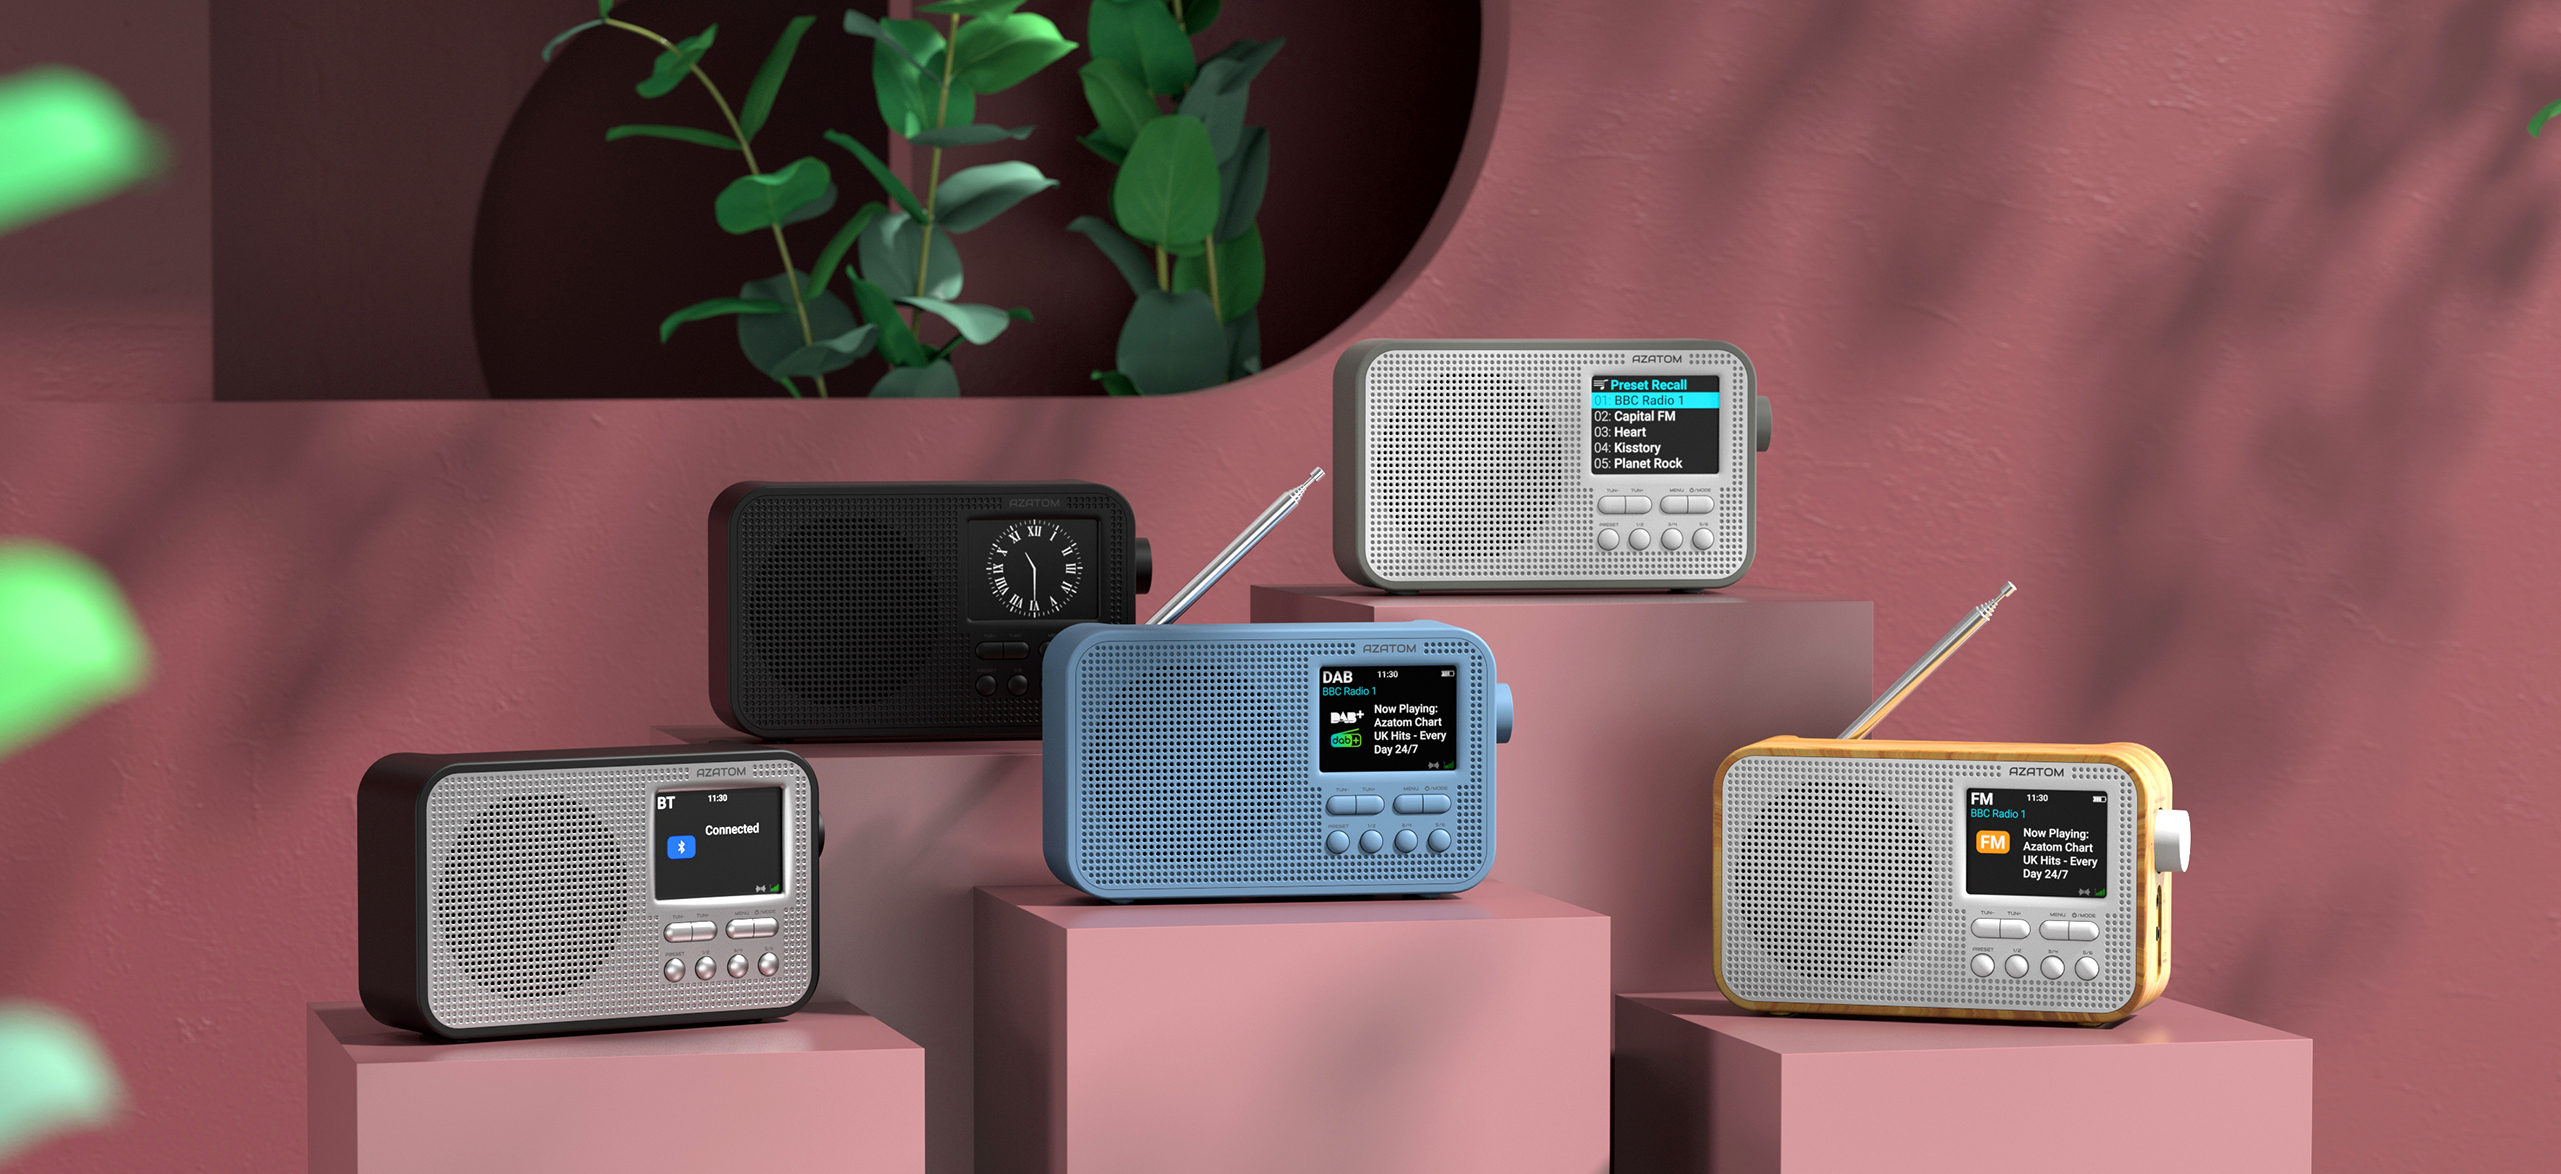 Aspire G1 Portable DAB+ Digital Radio with Bluetooth